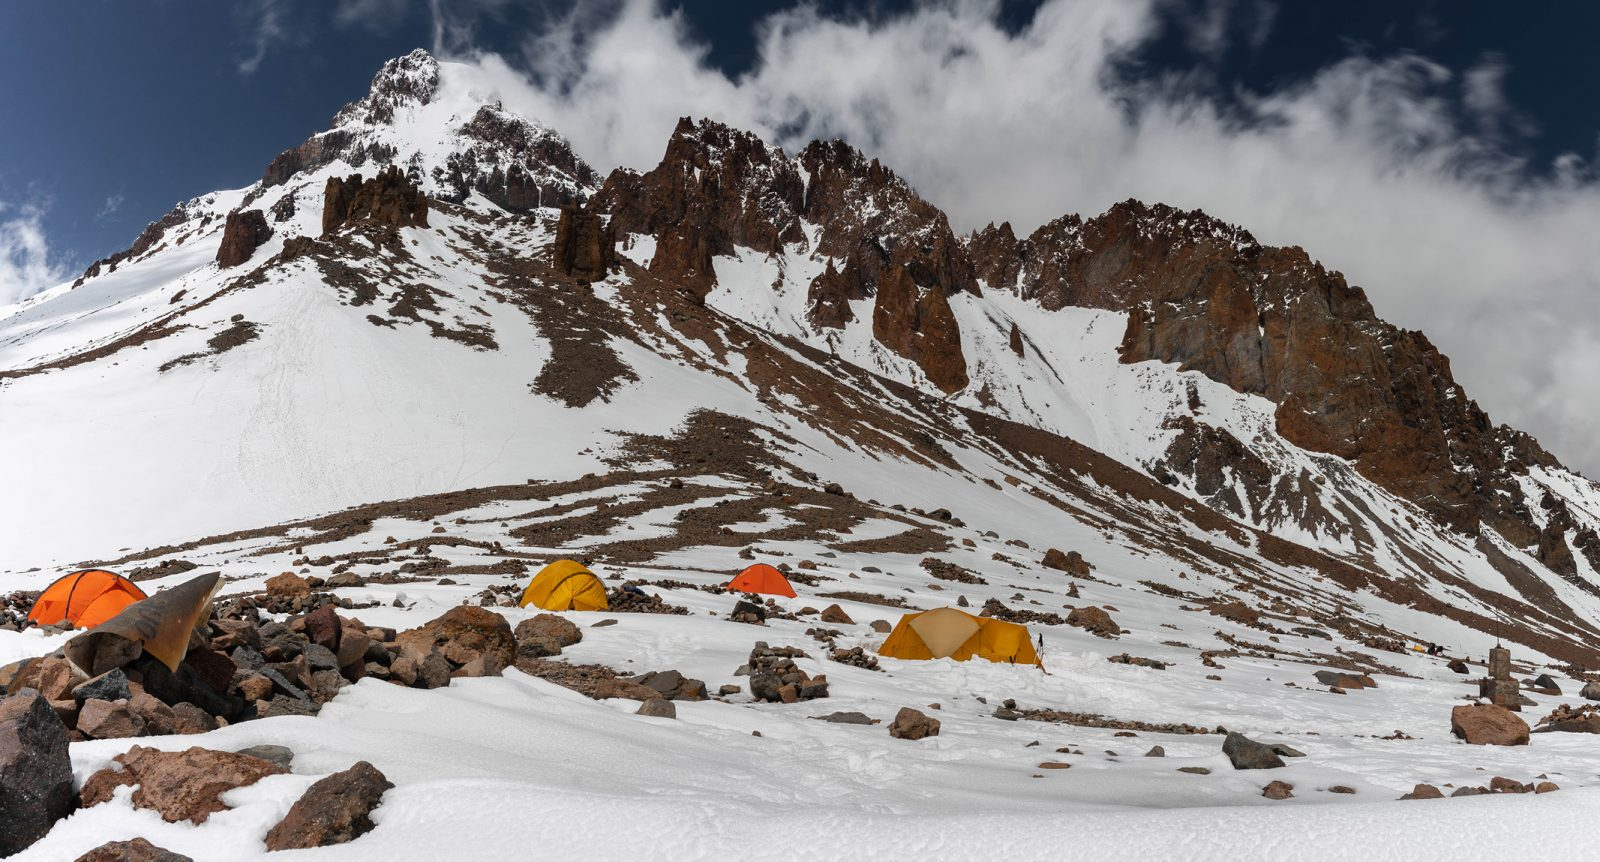 Advanced Basecamp on Georgia's Mount Kazbek in the Greater Caucasus Mountains